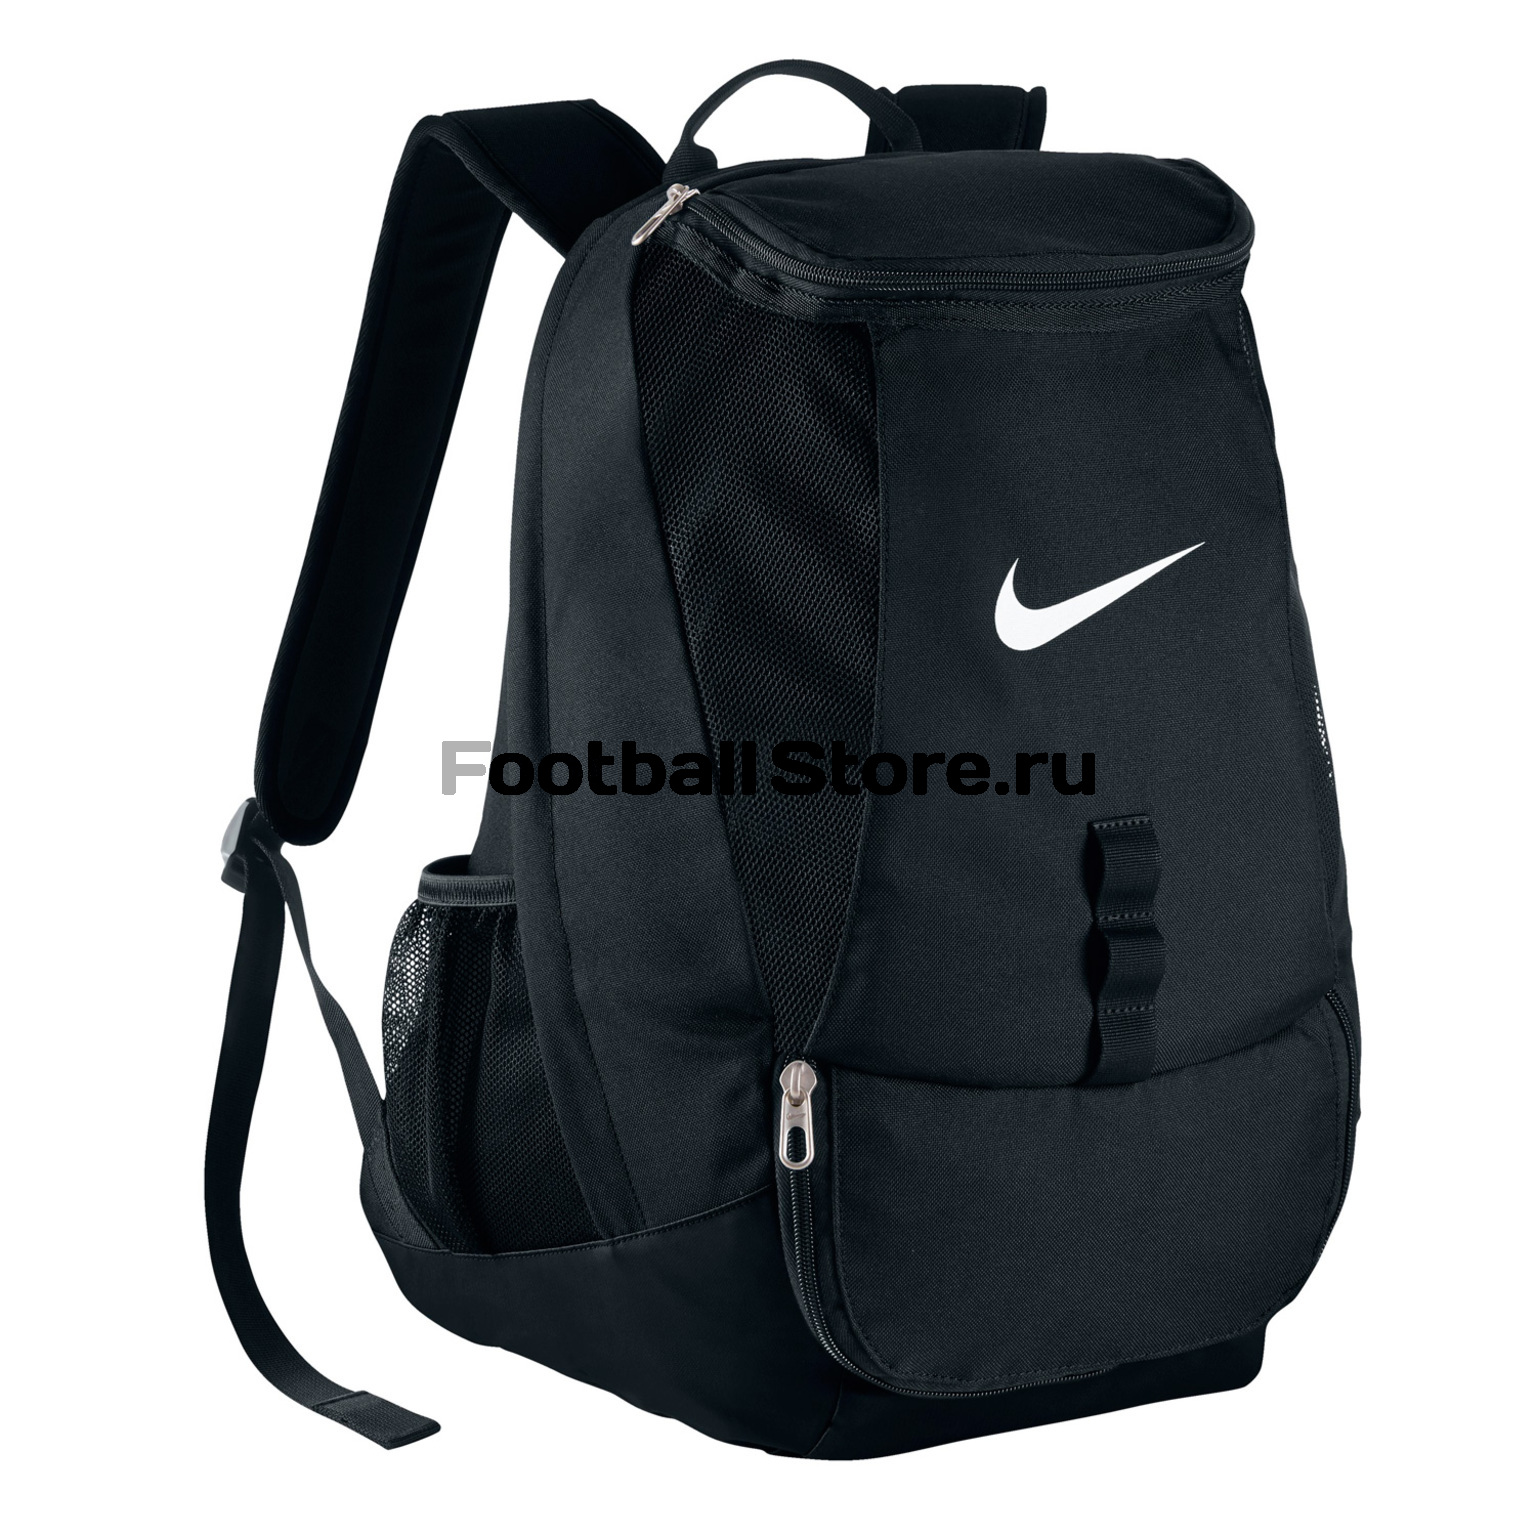 Сумки/Рюкзаки Nike Рюкзак Nike Club Team Swoosh BackPack BA5190-010